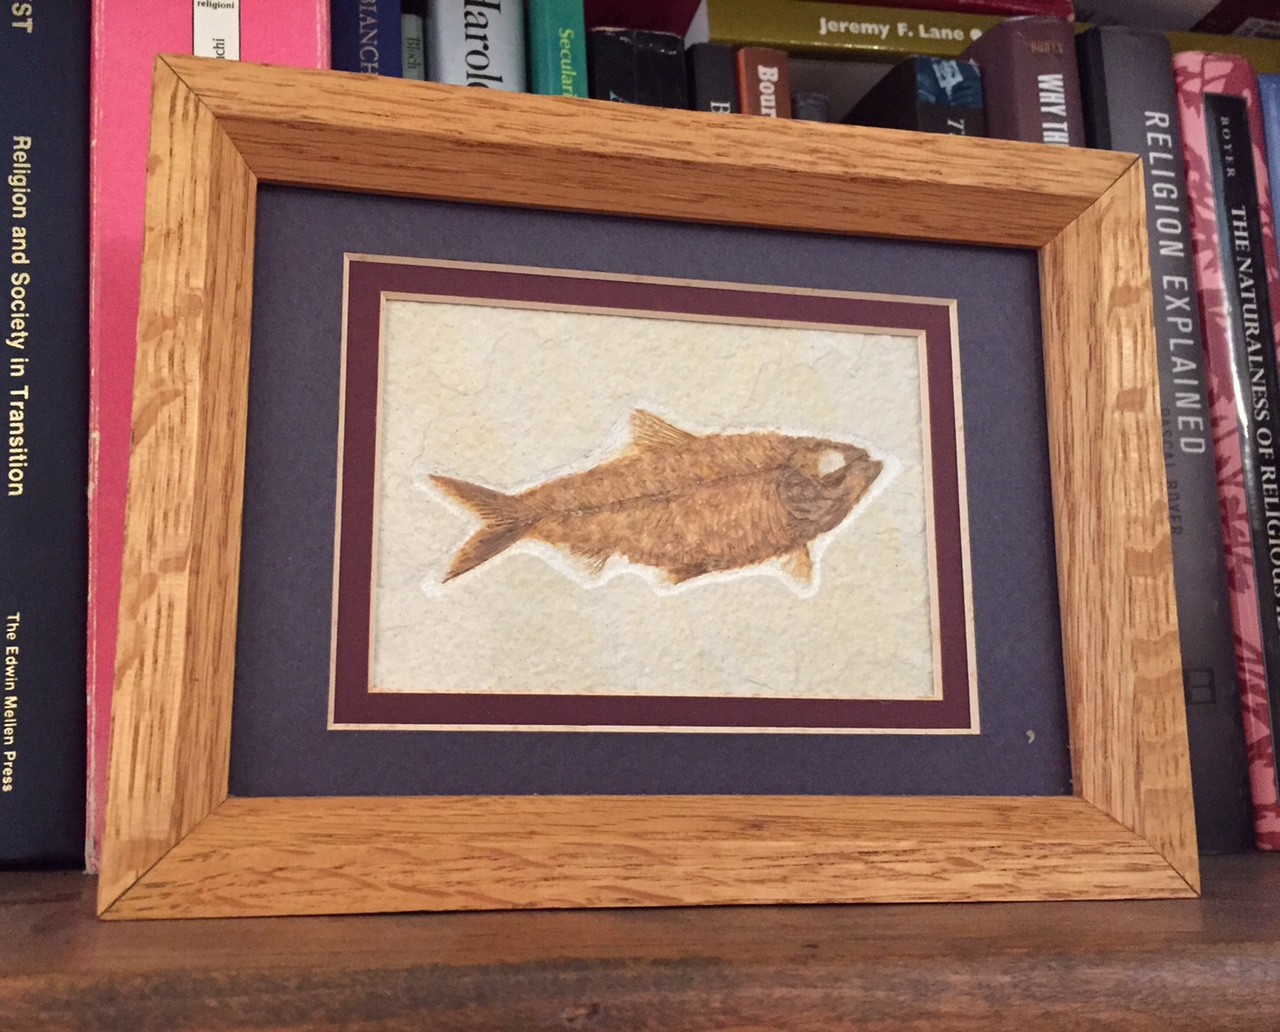 A framed picture of a fish